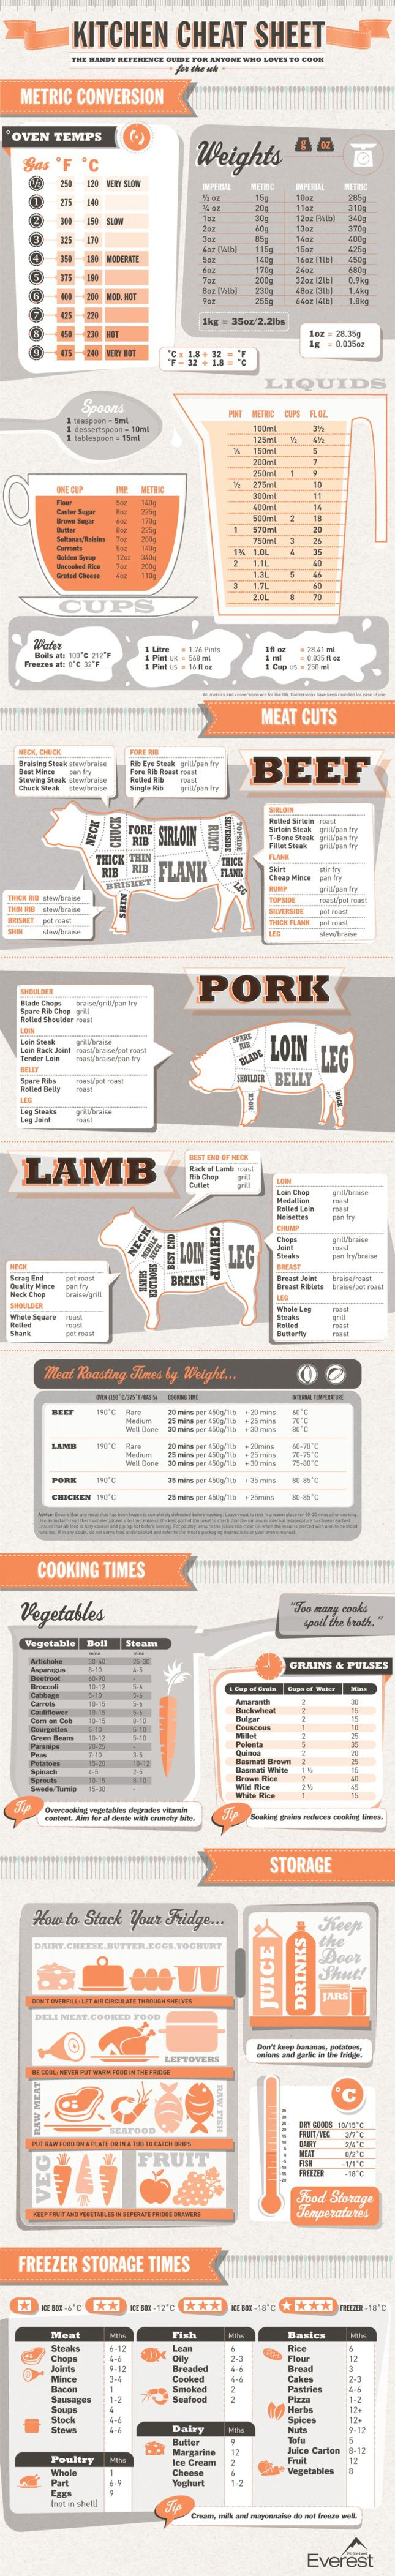 kitchen cheat sheet! Will have a copy of this in my kitchen!